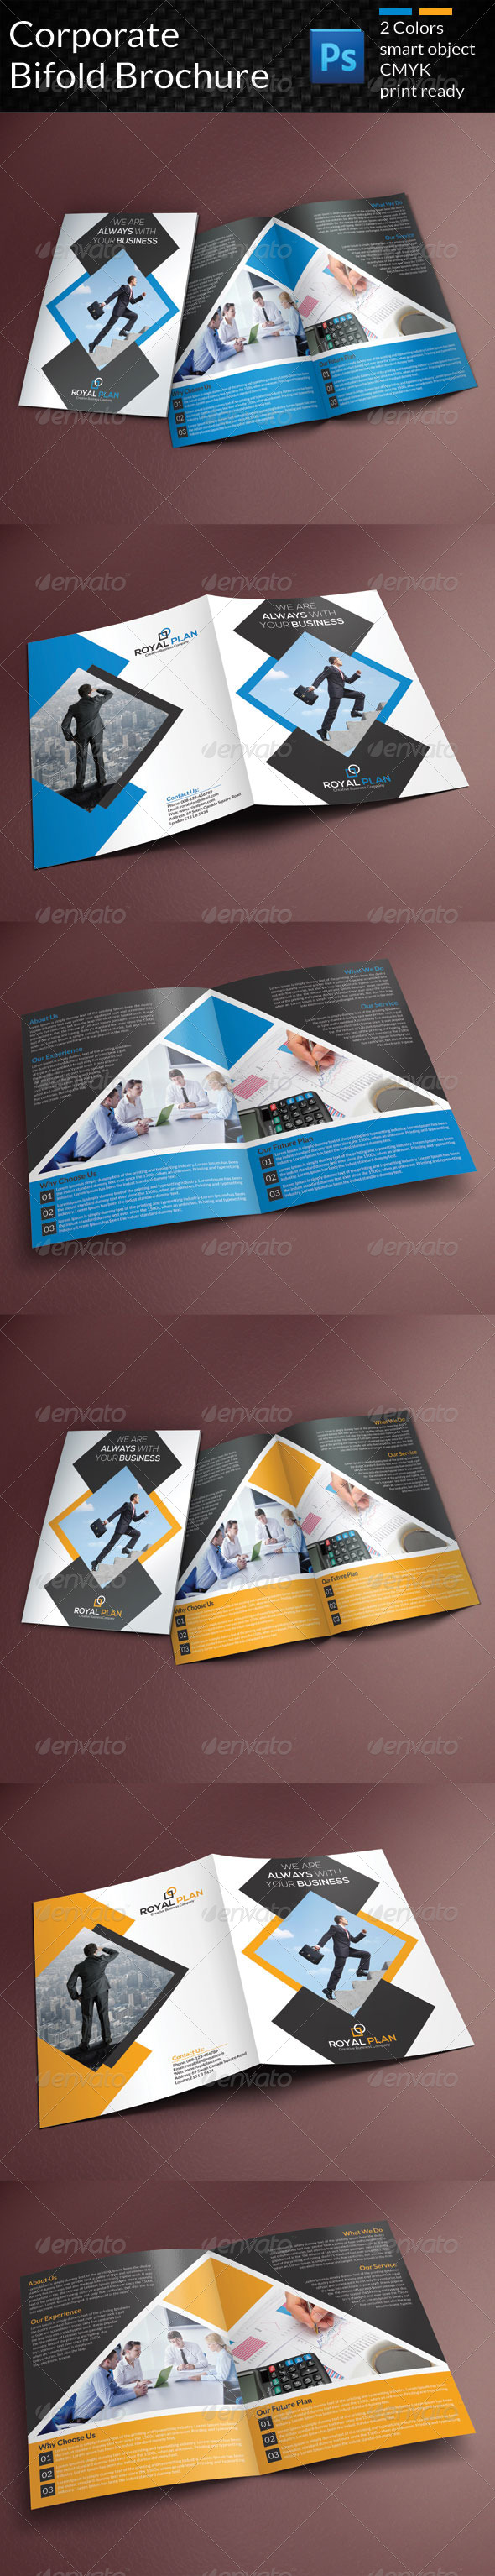 GraphicRiver Corporate Bifold Brochure 8758422